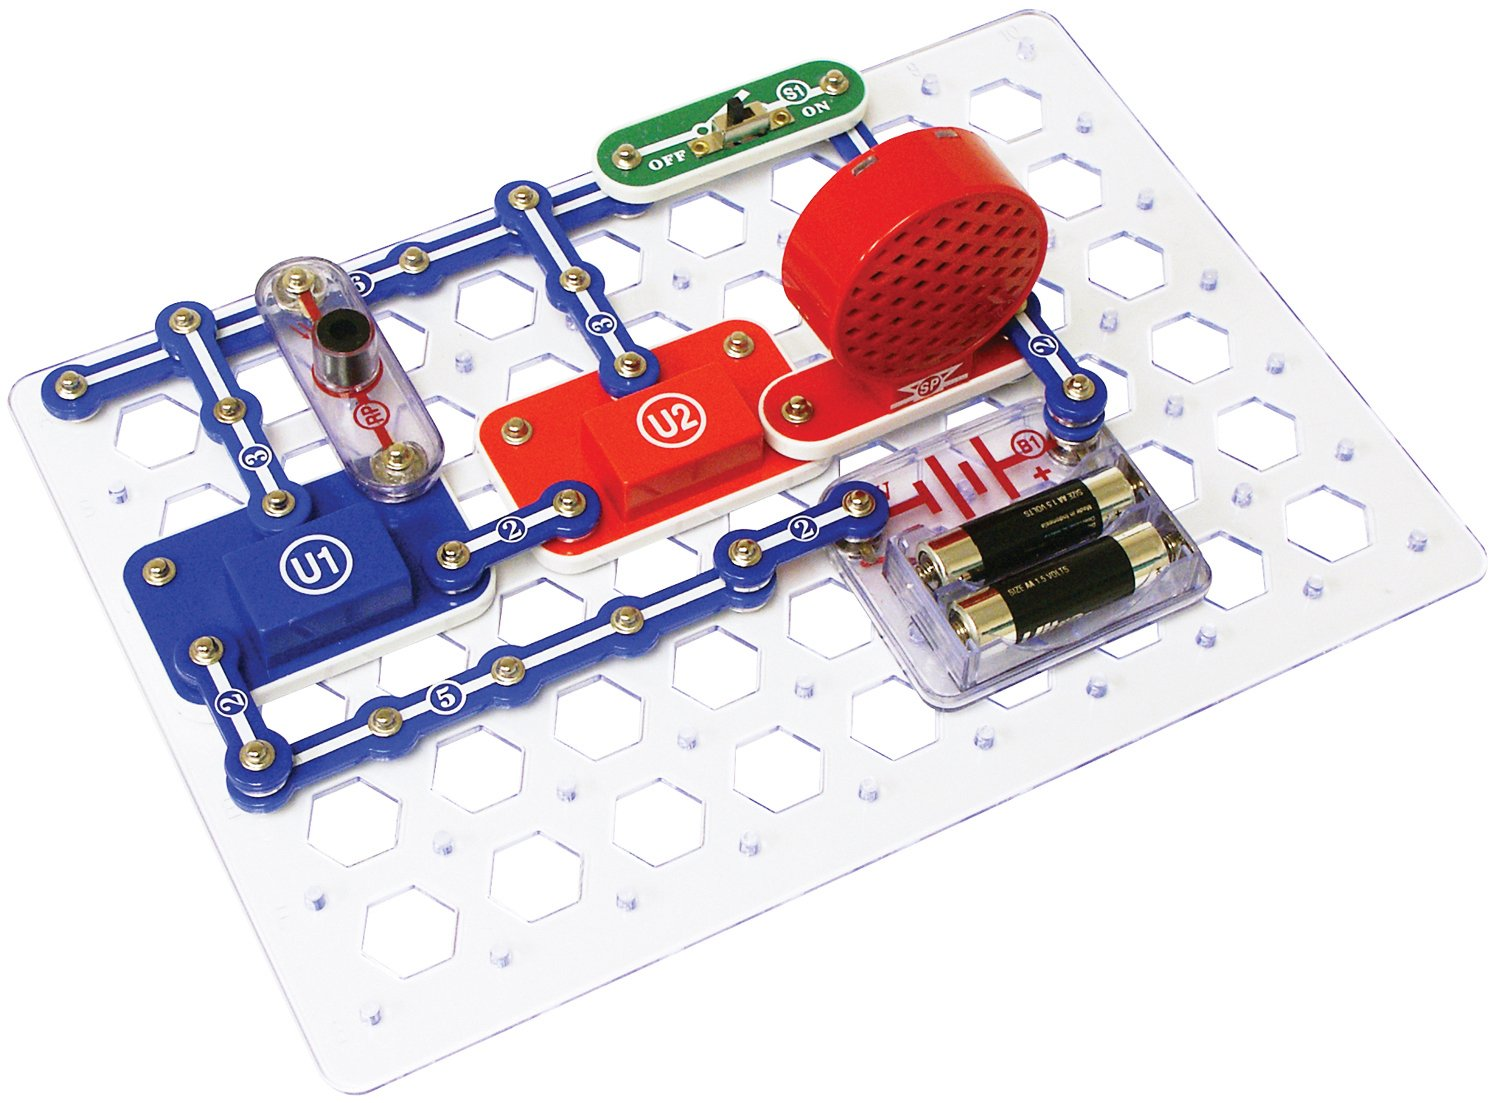 Buy Snap Circuits Jr. SC-100 Online at Low Prices in India - Amazon.in